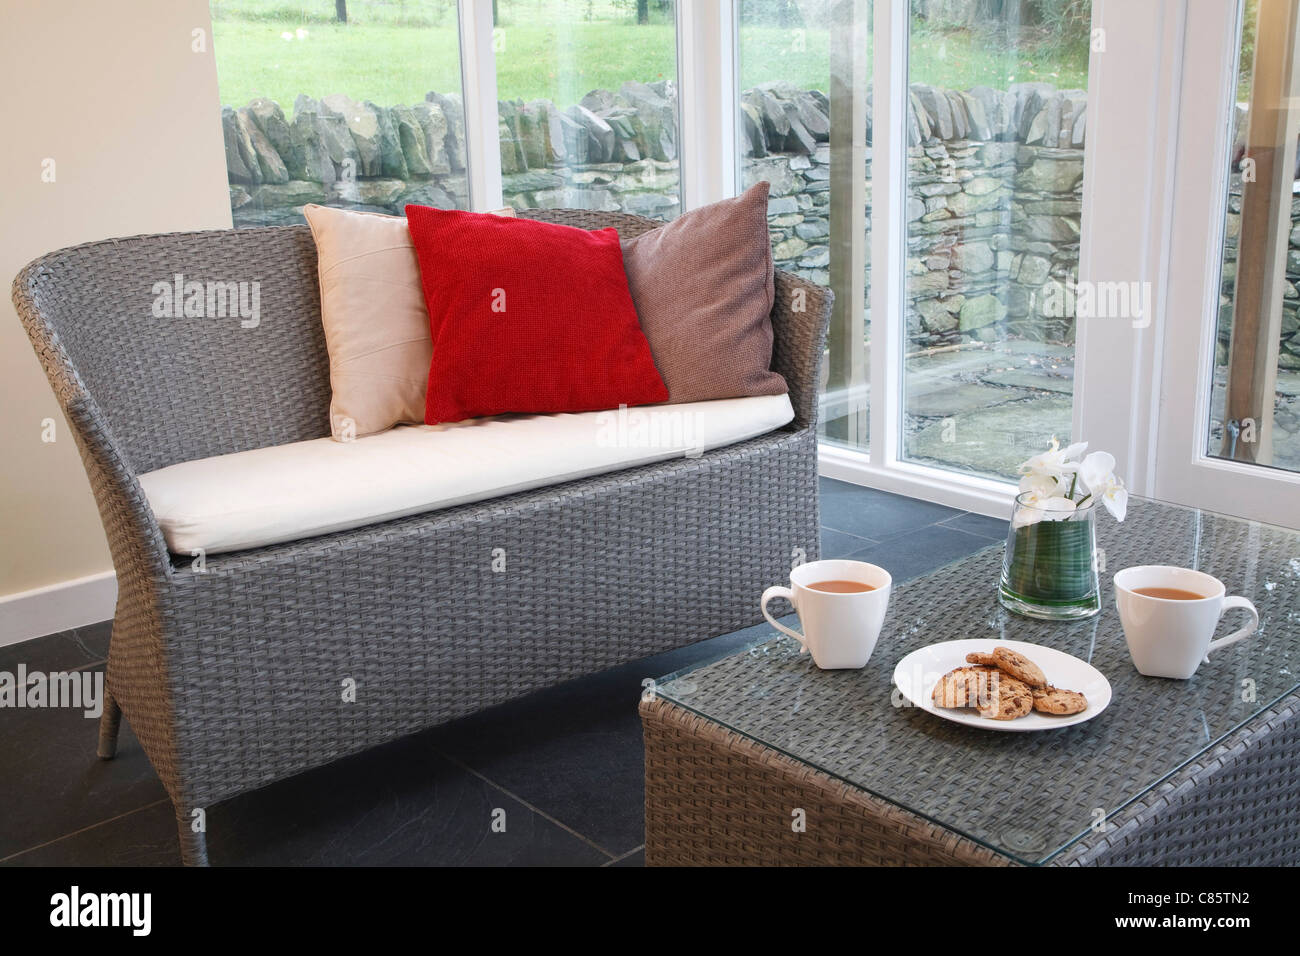 Conservatory interior design with rattan chairs and coffee table conservatory interior design with rattan chairs and coffee table geotapseo Image collections